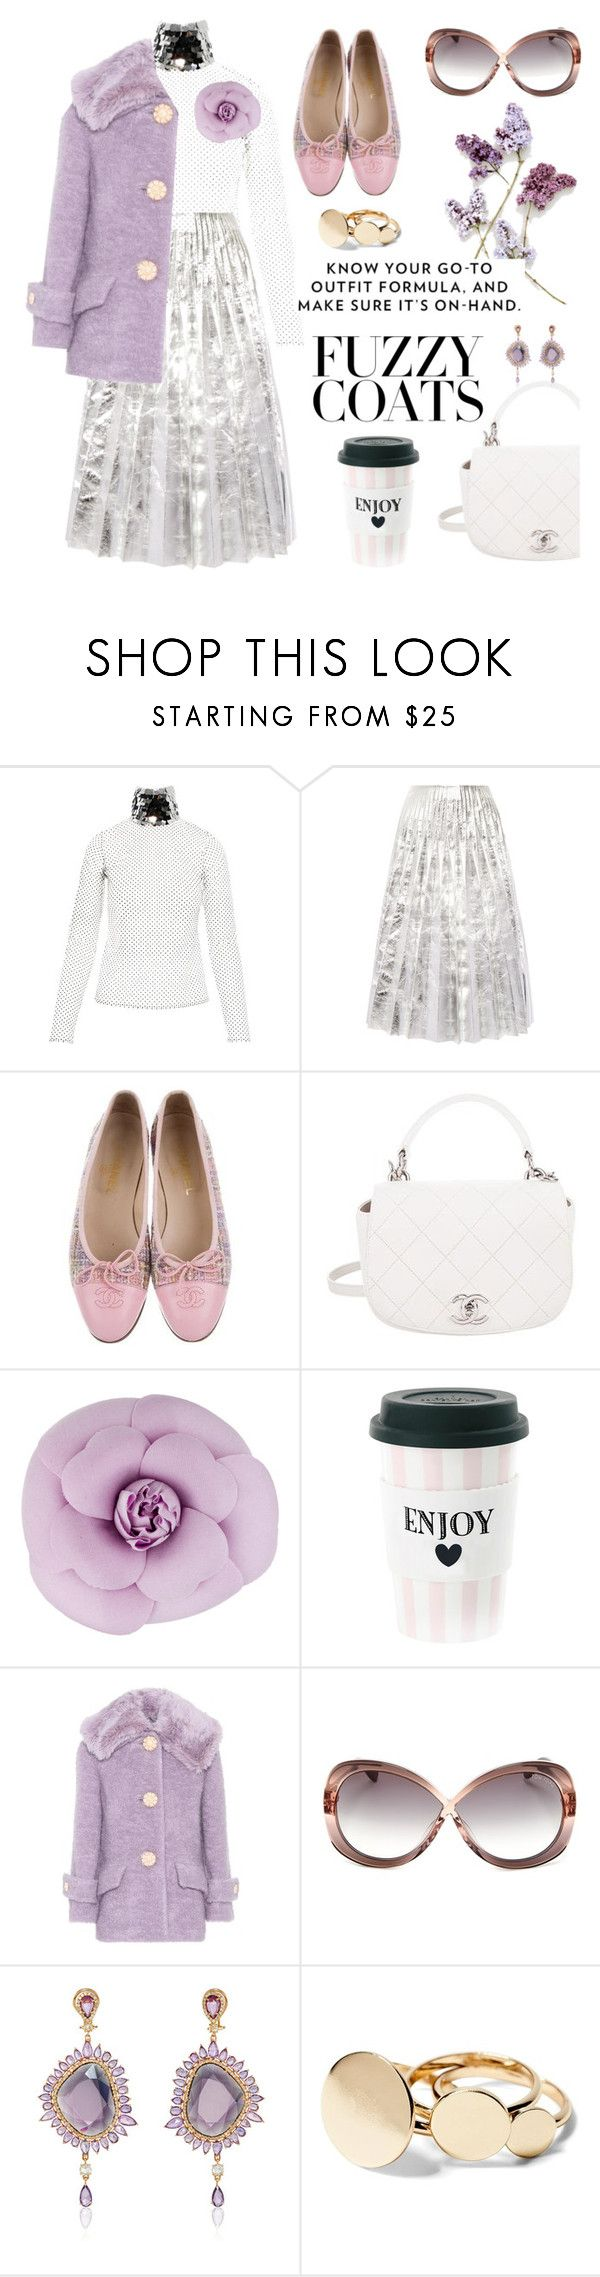 """""""fizz fuzz"""" by pensivepeacock ❤ liked on Polyvore featuring Anouki, Gucci, Chanel, Miss Étoile, Miu Miu and Tom Ford"""